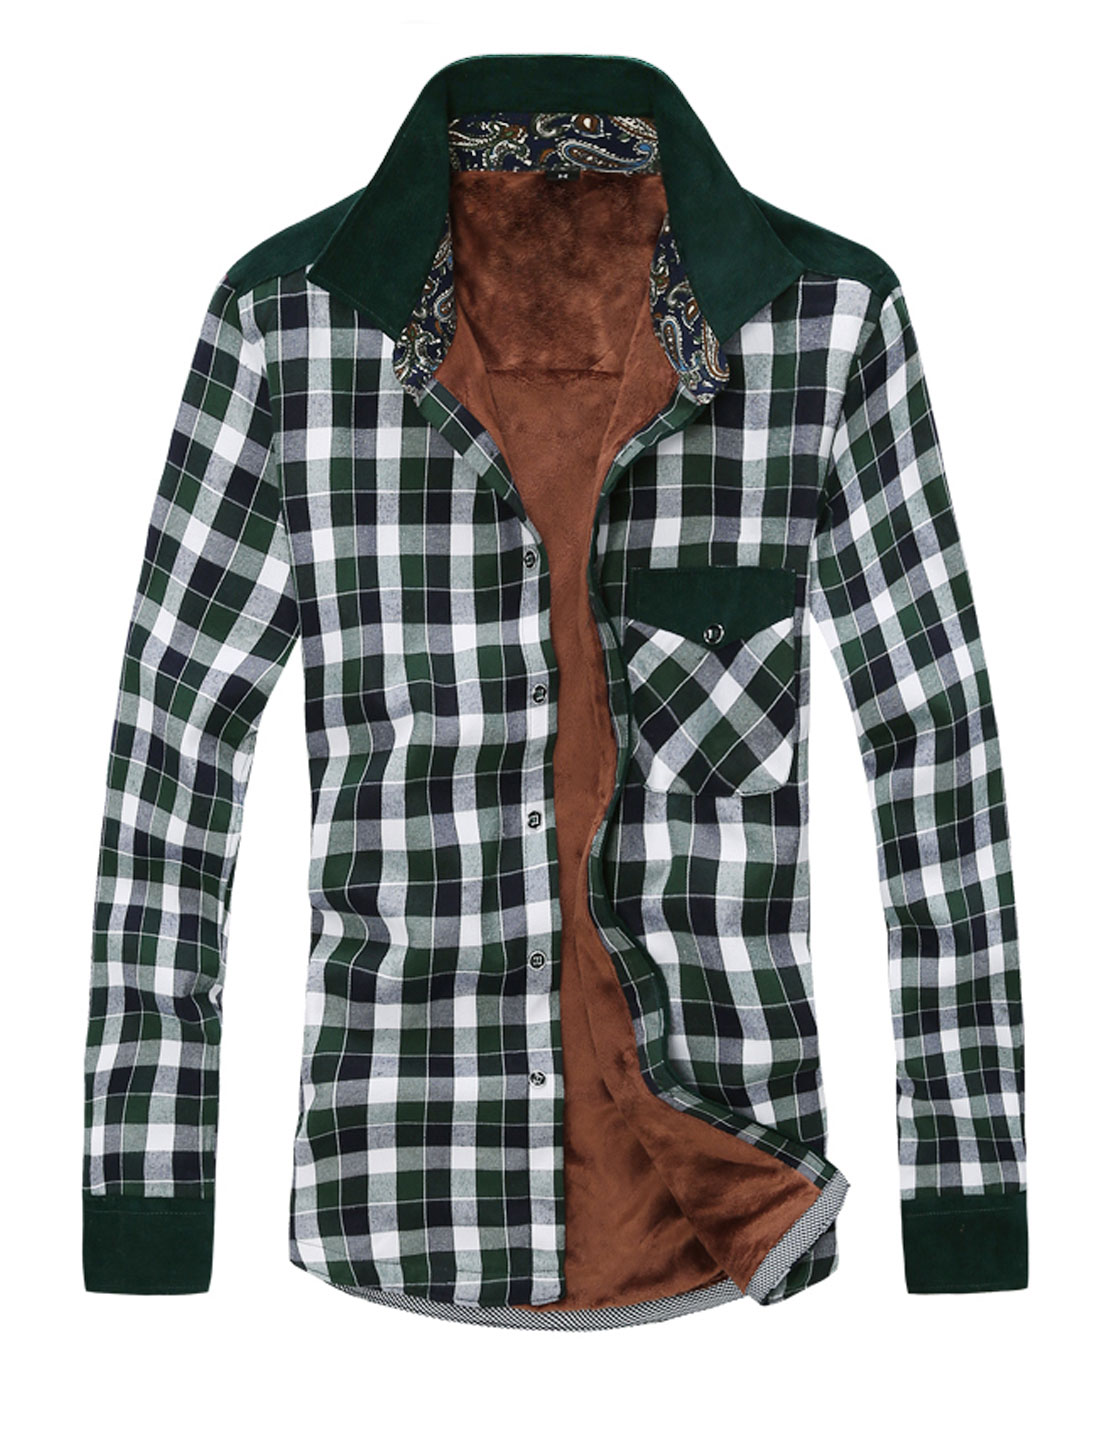 New Style Plaids Pattern Single Breasted Leisure Shirt for Men Green M